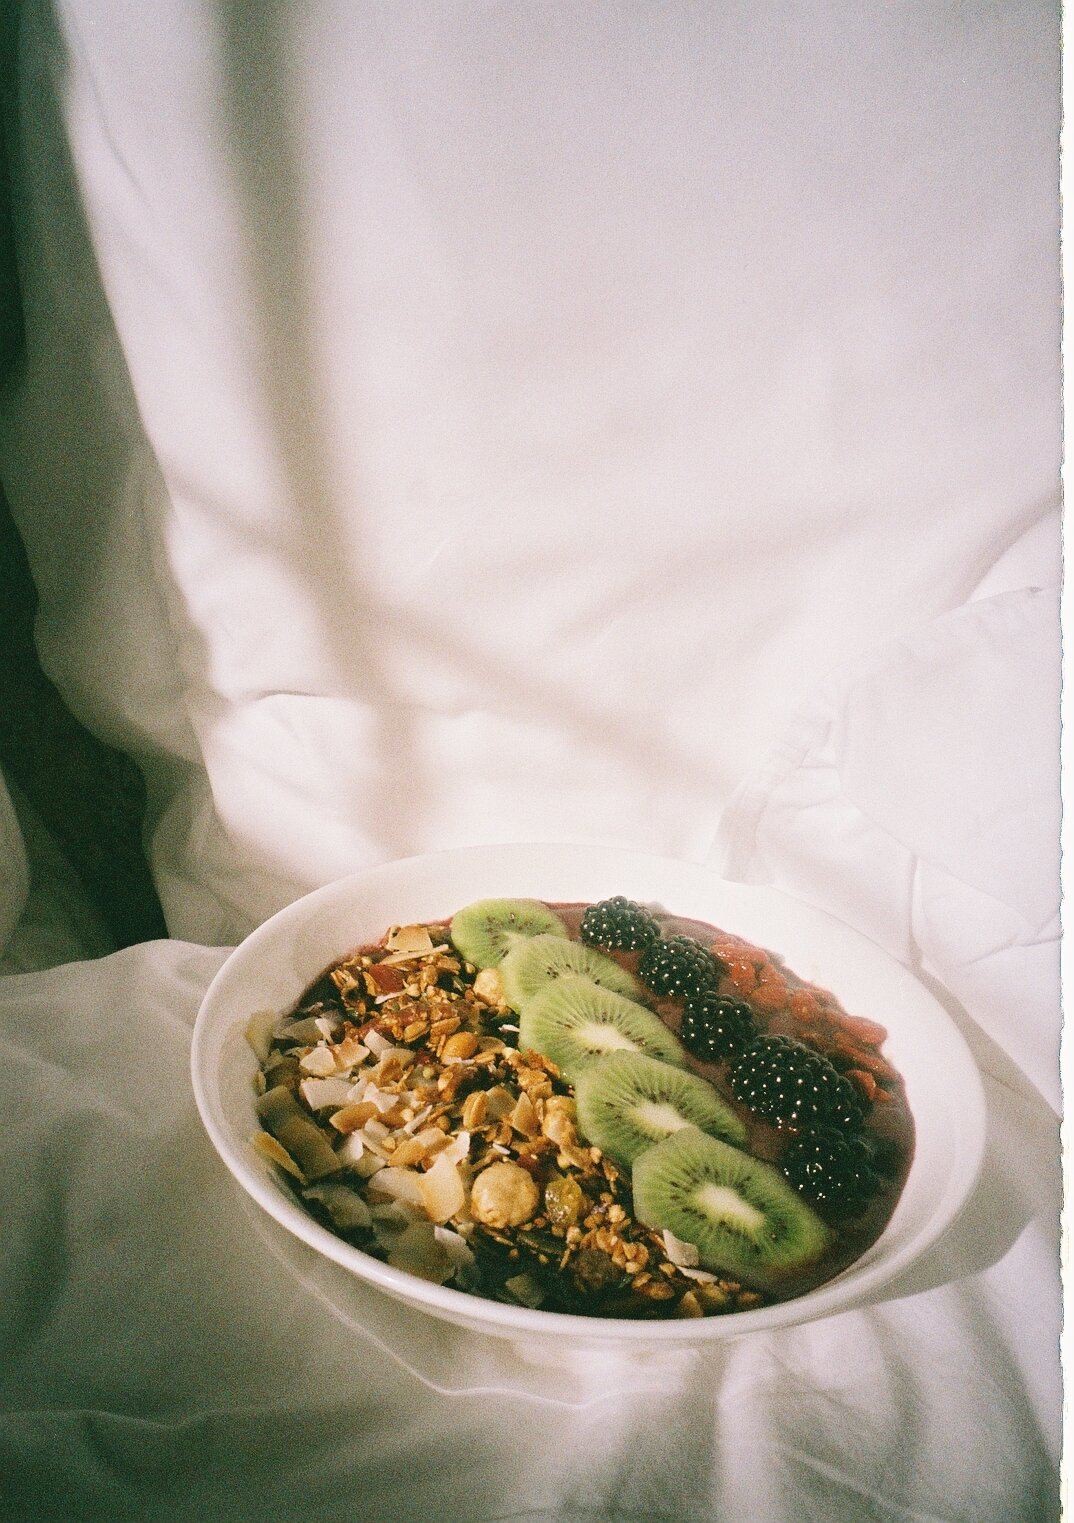 early morning rise the next day and started off with an acai bowl and matcha latte.